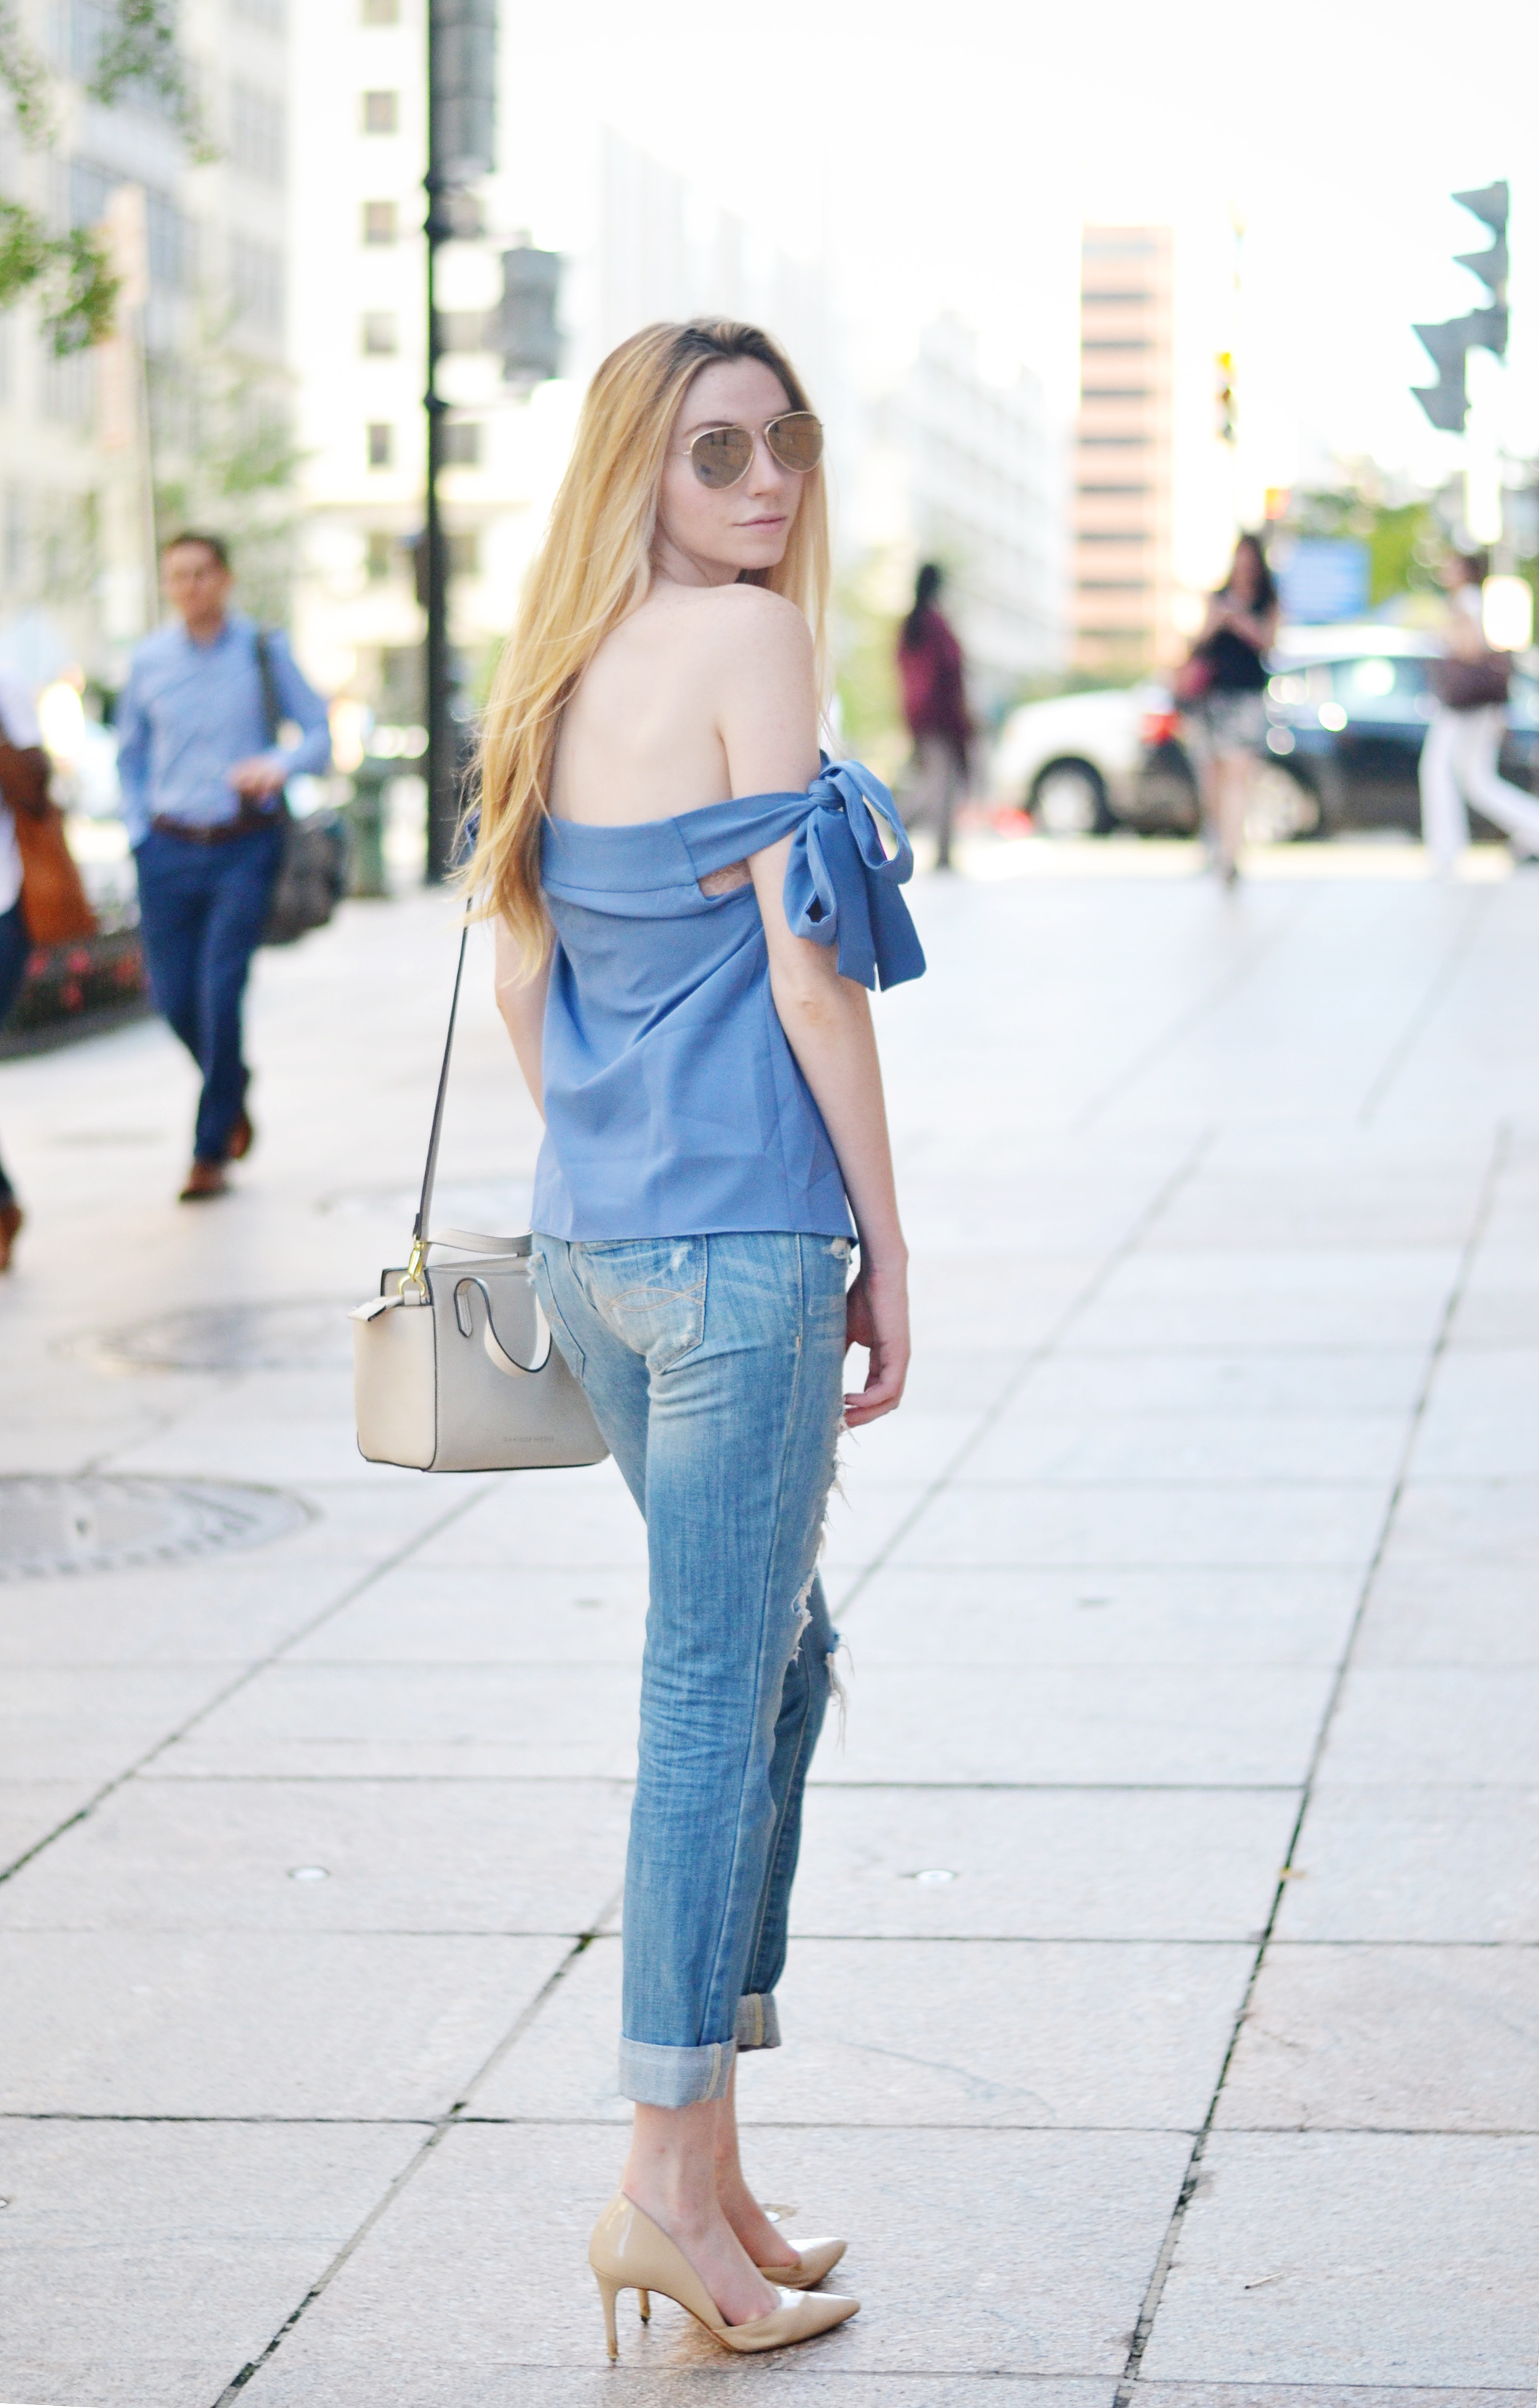 Blogger Off The Shoulder Top (via Chic Now)